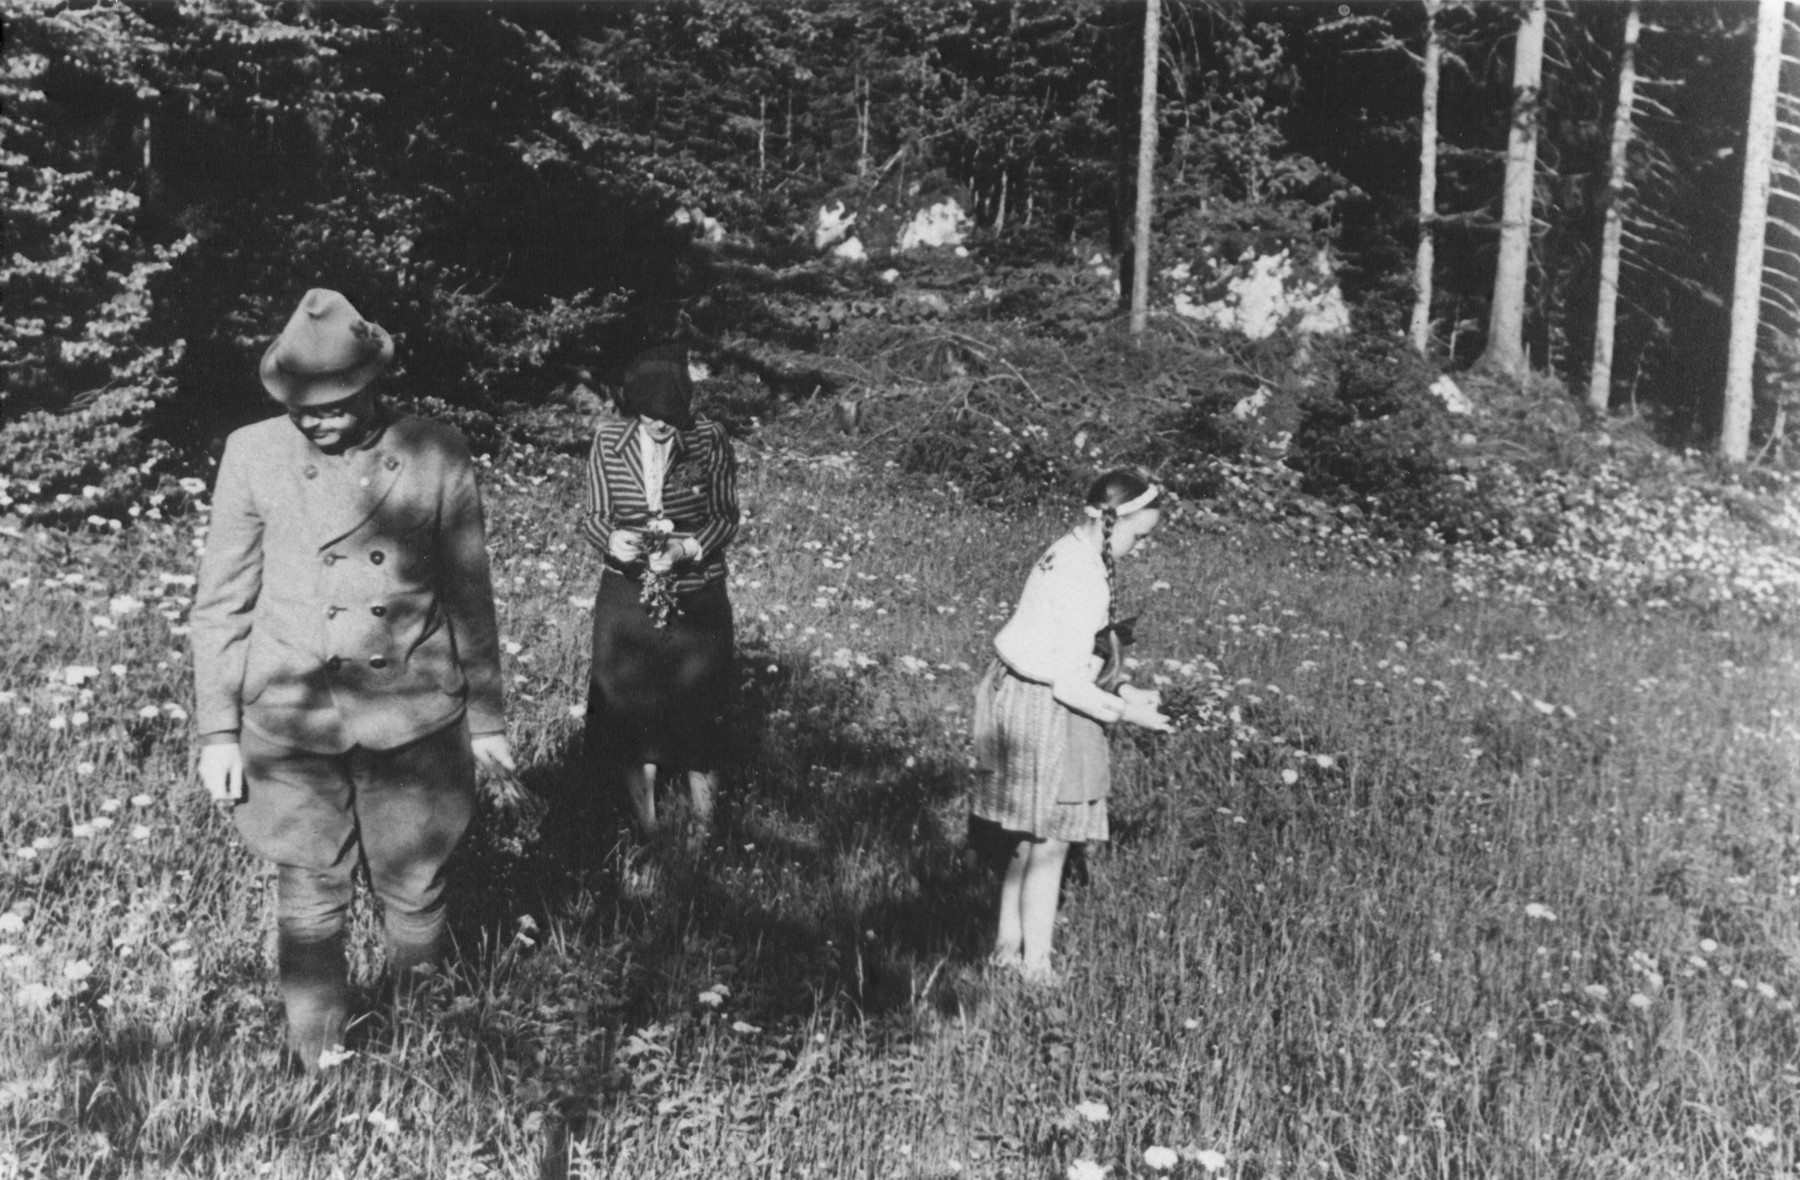 Heinrich Himmler collects wild flowers with his daughter Gudrun and his wife Margarete.